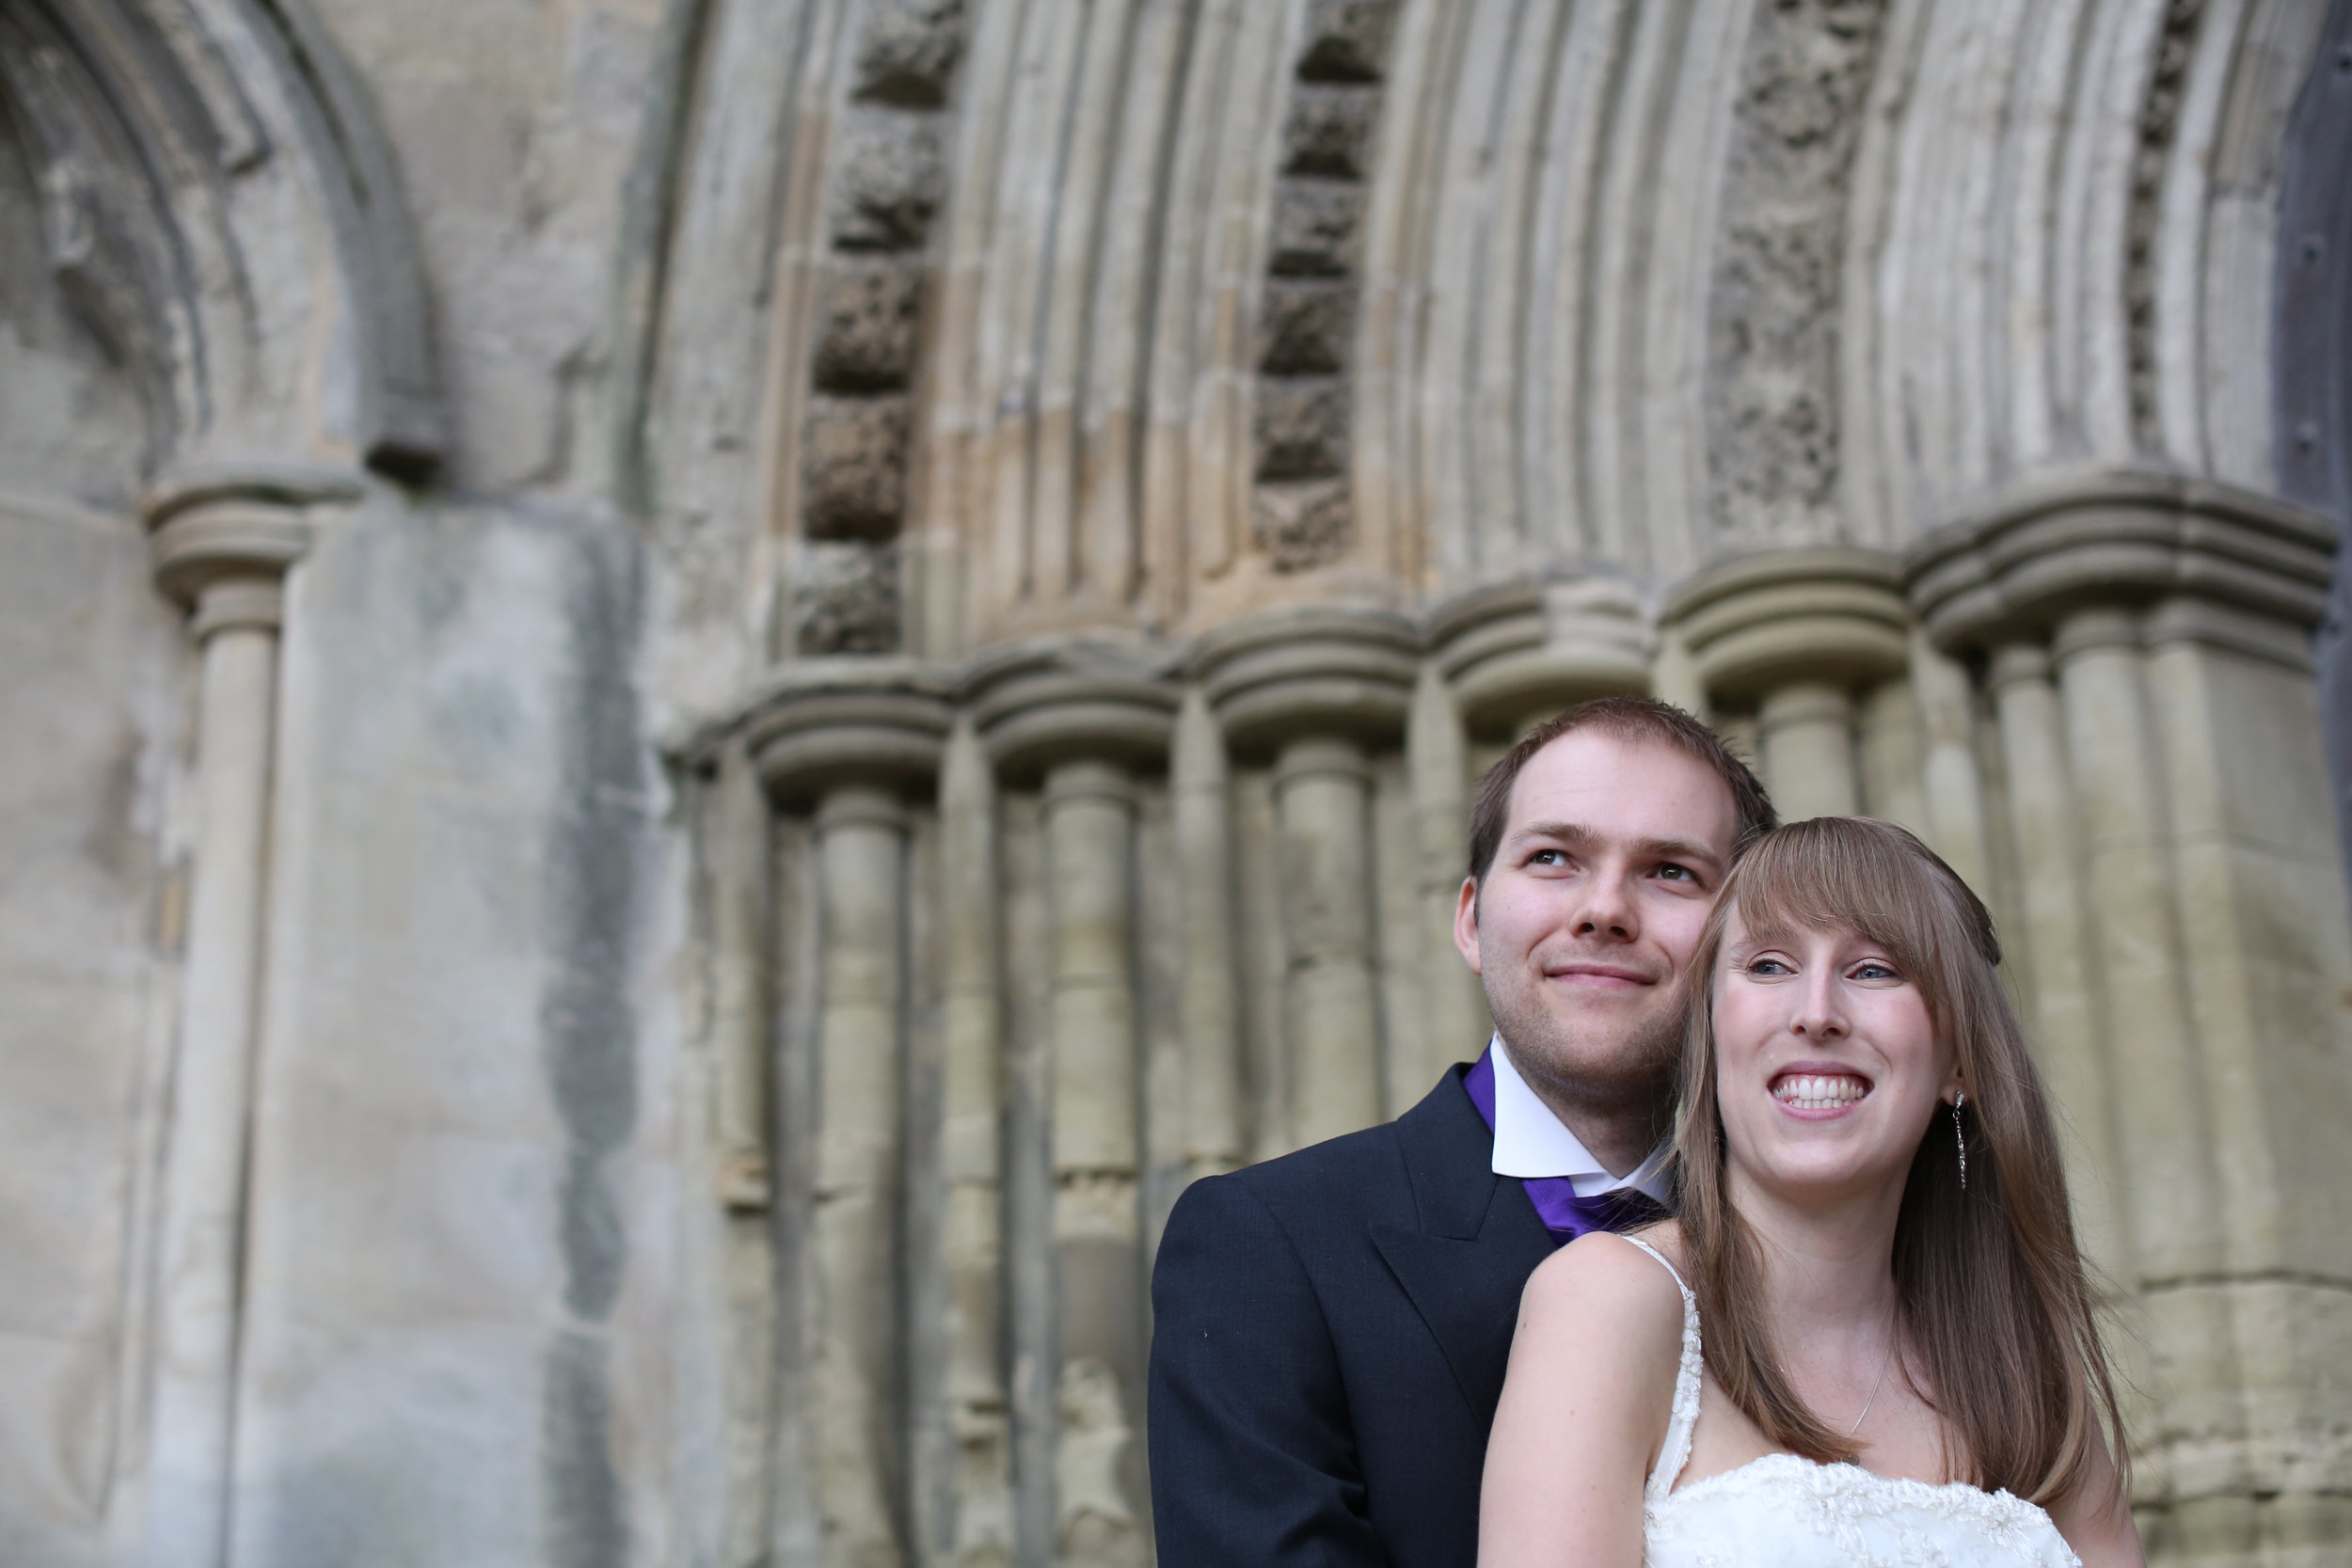 JELLYFISH WEDDING PHOTOGRAPHY THE PRIORY CHURCH ST PETER DUNSTABLE (49).jpg